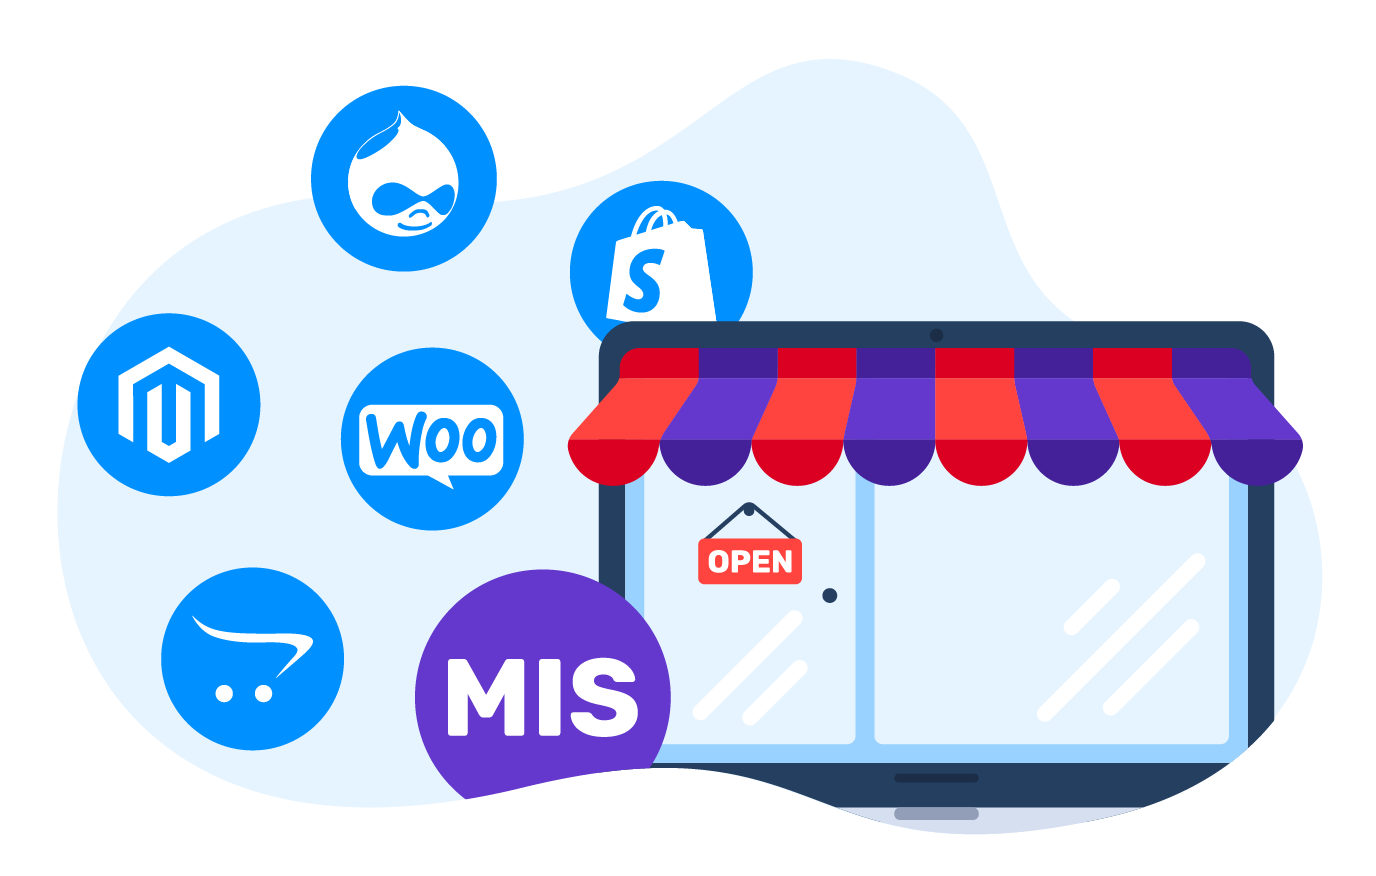 Any e-commerce platform or MIS application